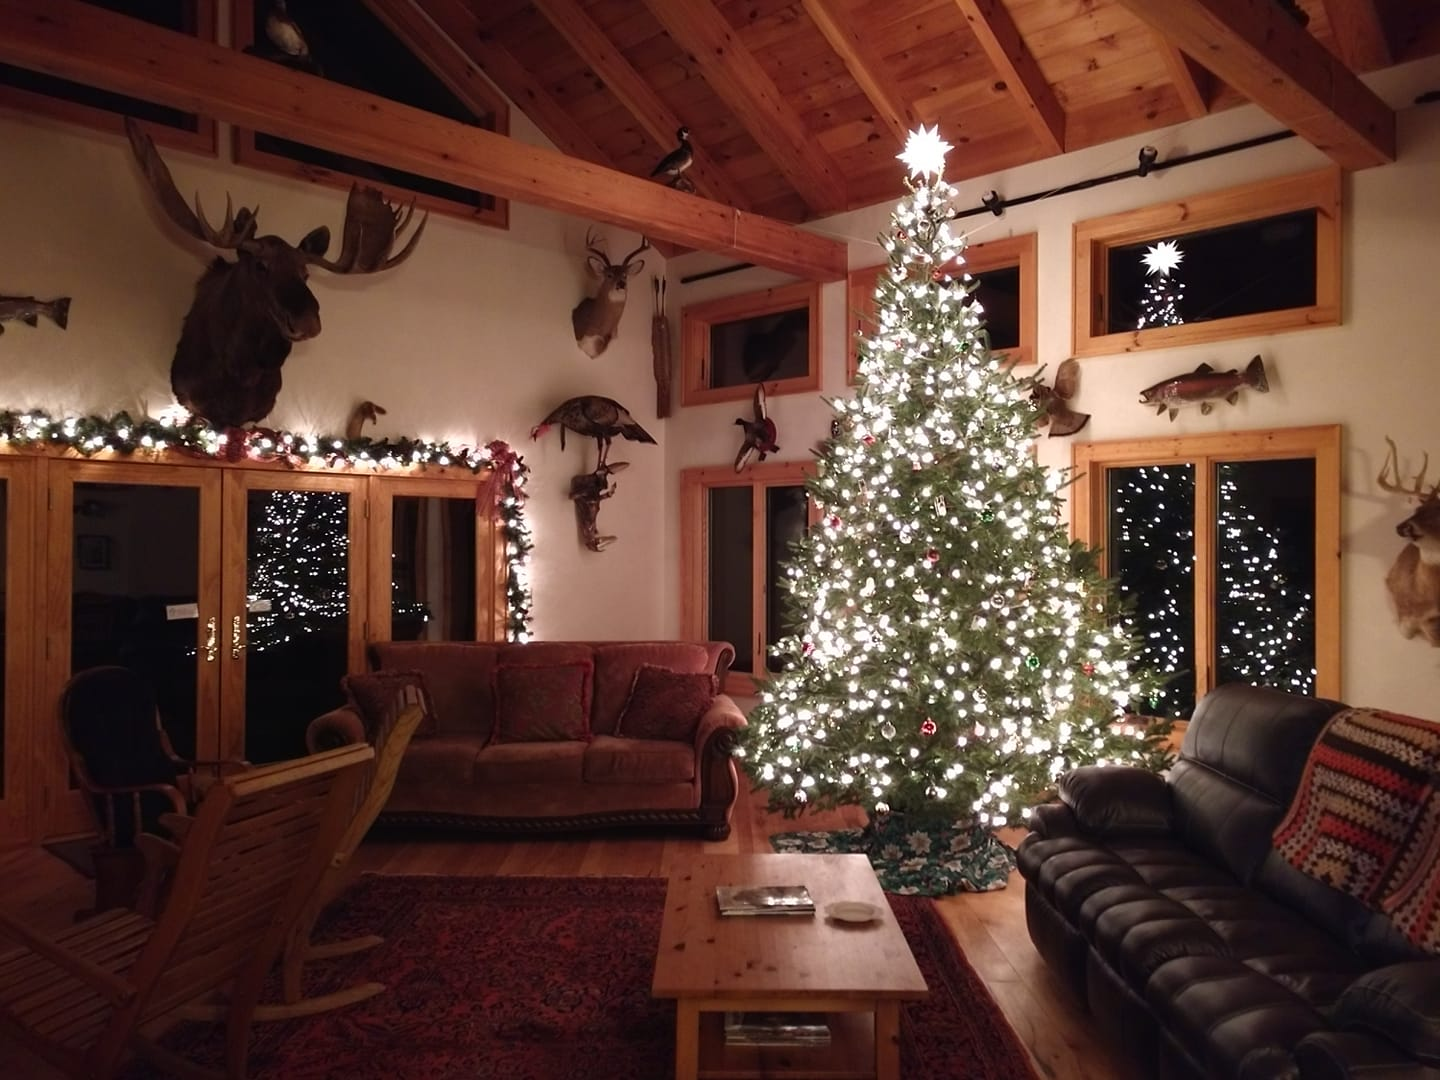 Christmas tree with white lights at night in large living room with wood panel vaulted ceiling